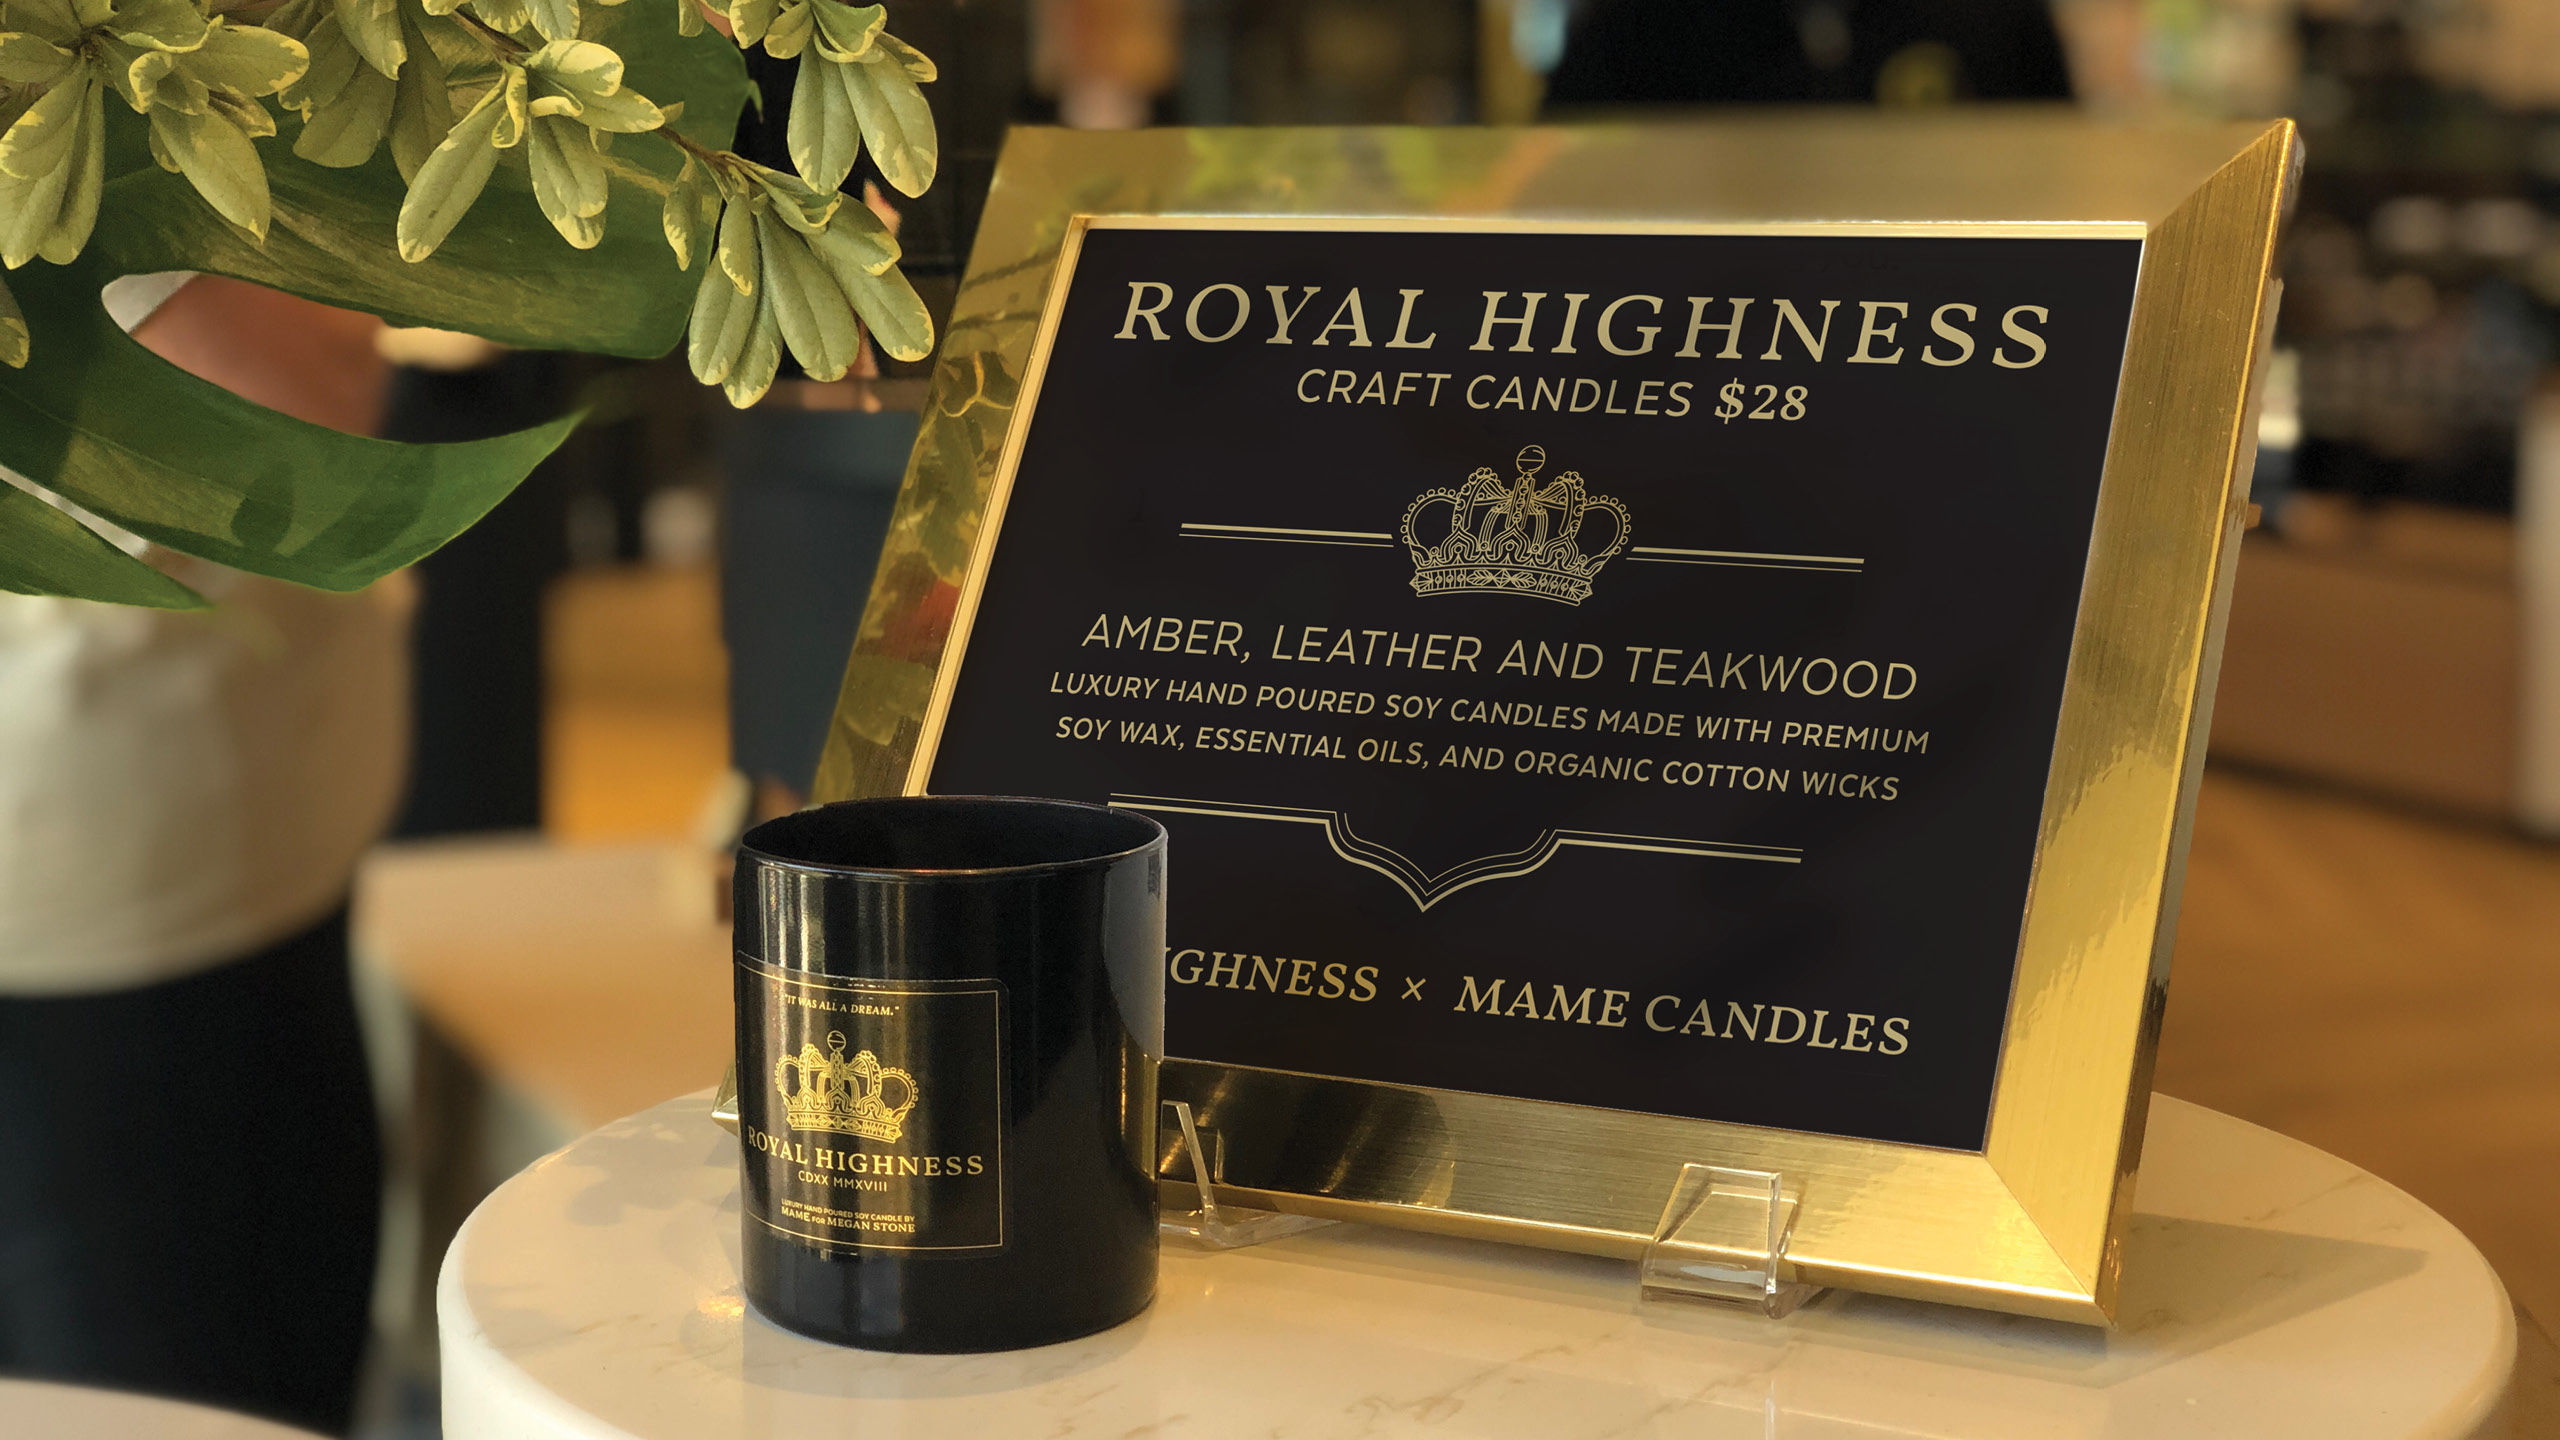 Royal Highness Brand Style Guide by High Road Design Studio